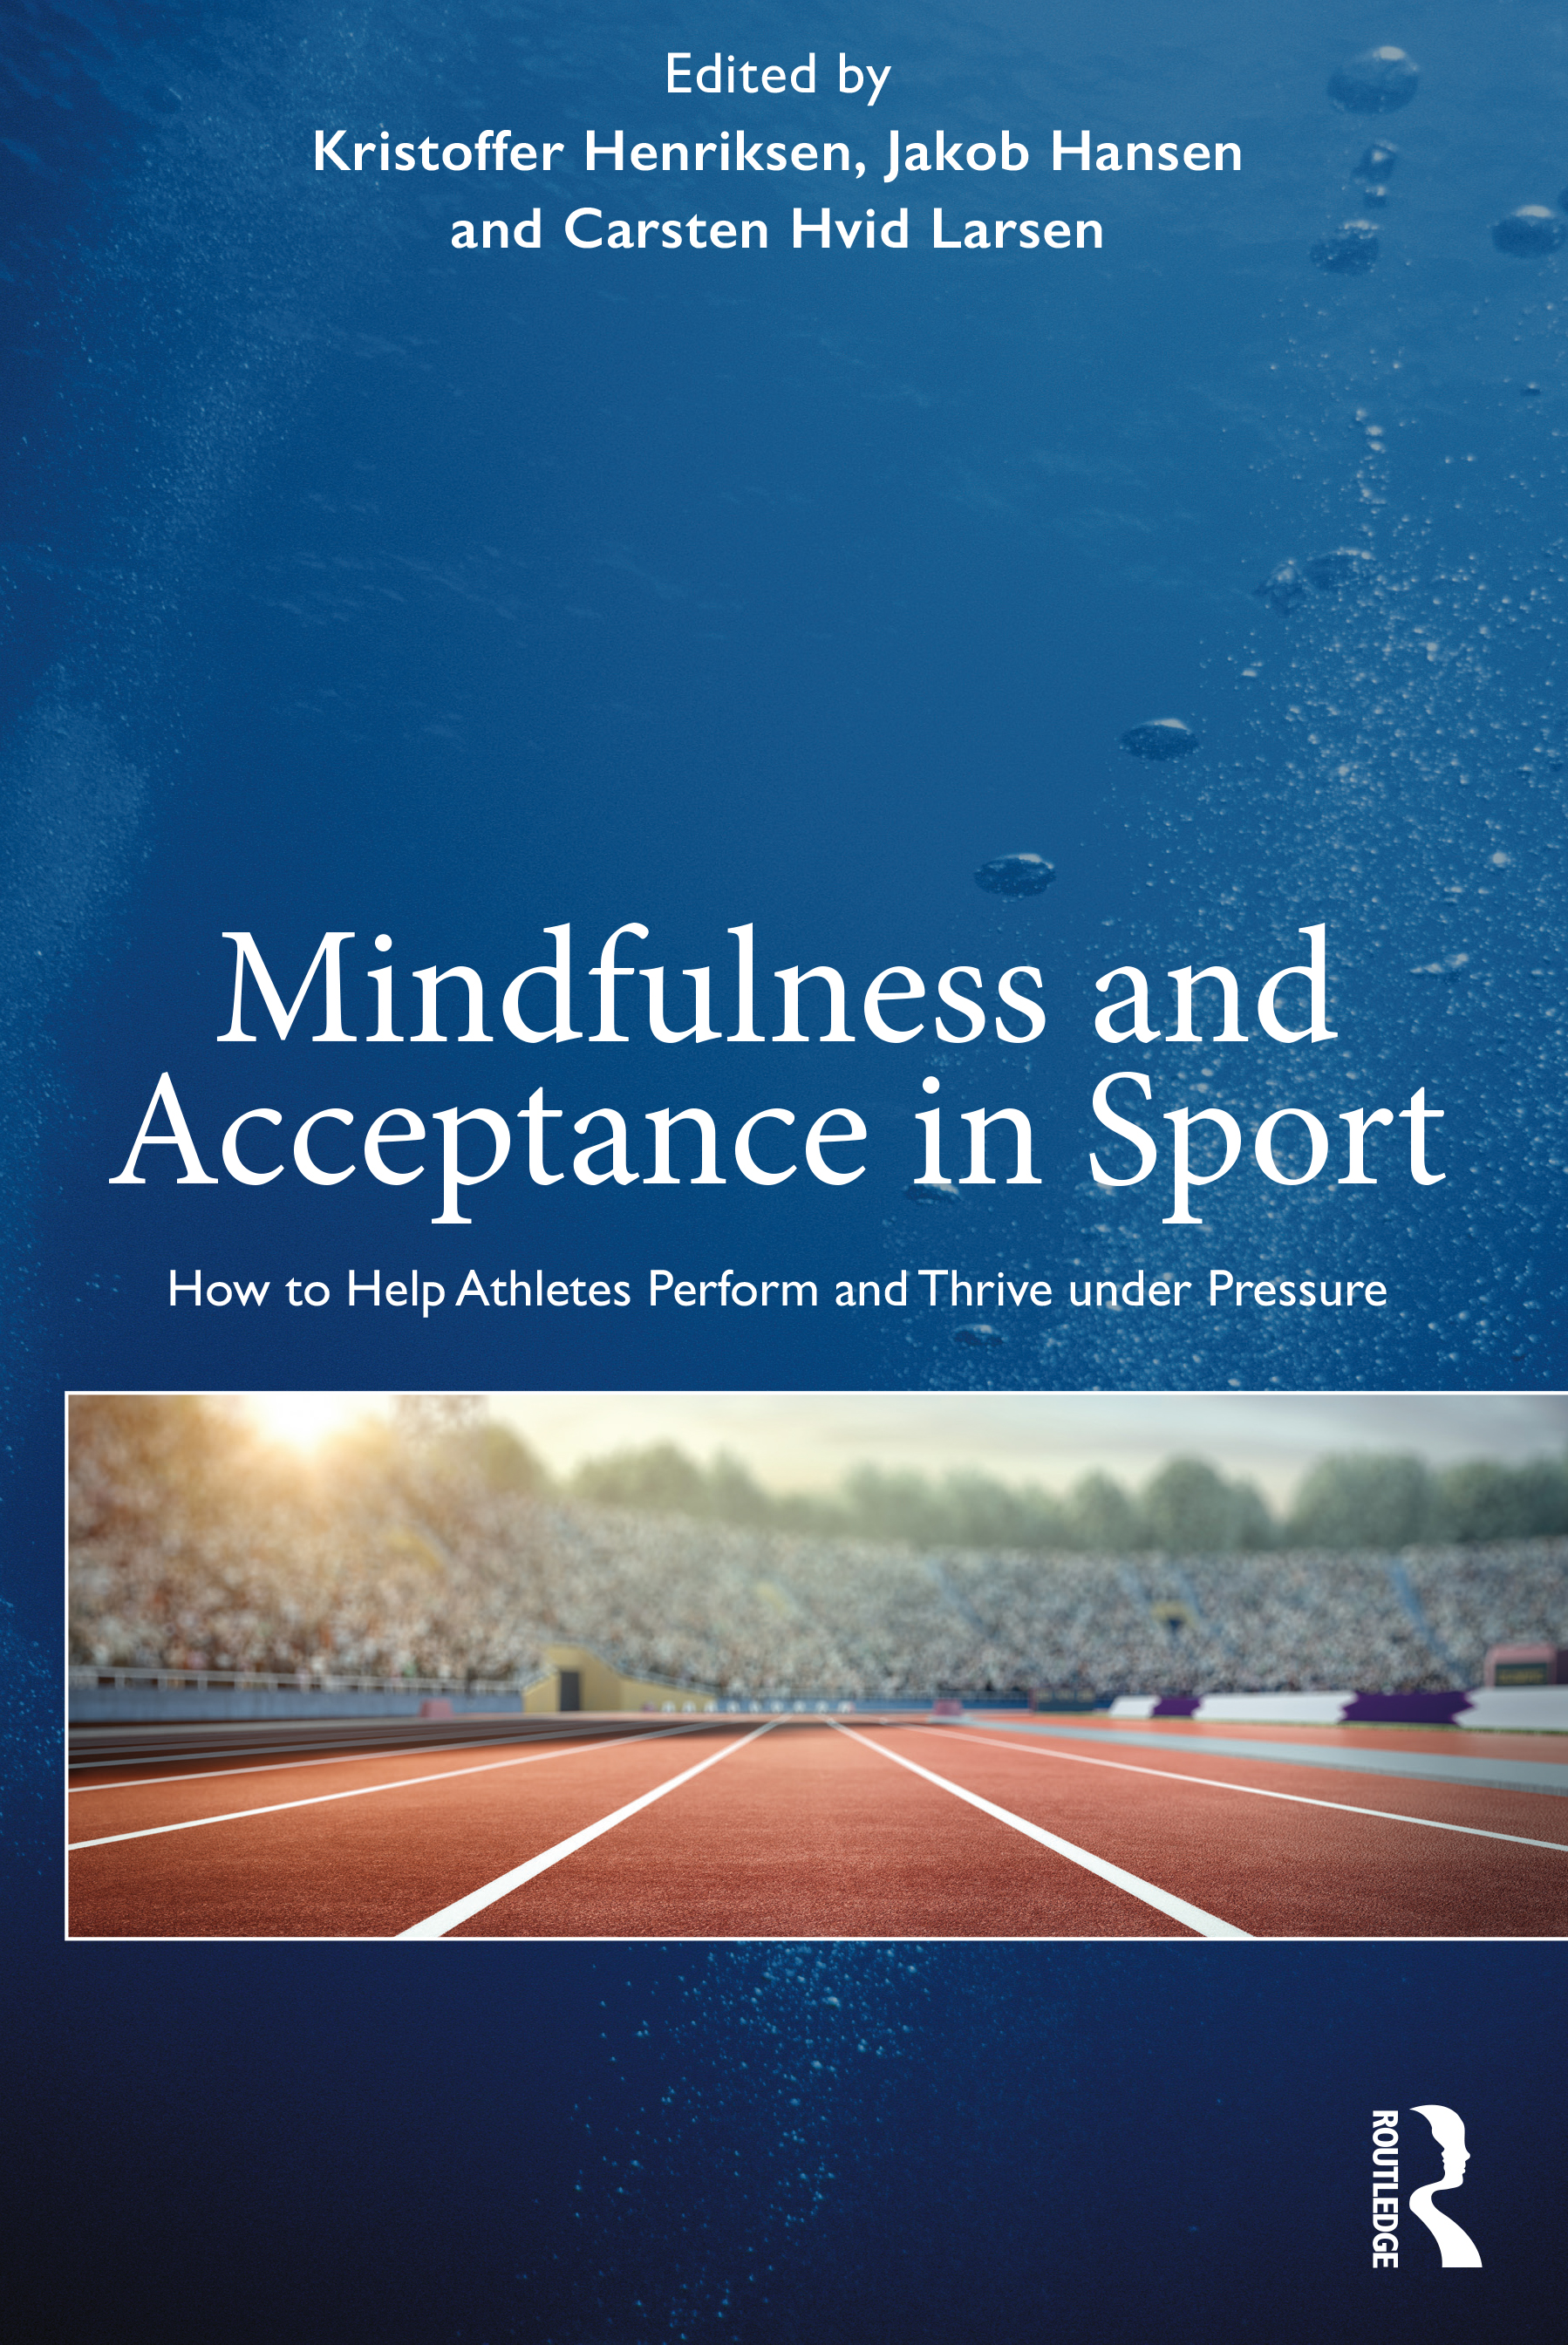 Mindfulness and Acceptance in Sport: How to Help Athletes Perform and Thrive under Pressure book cover